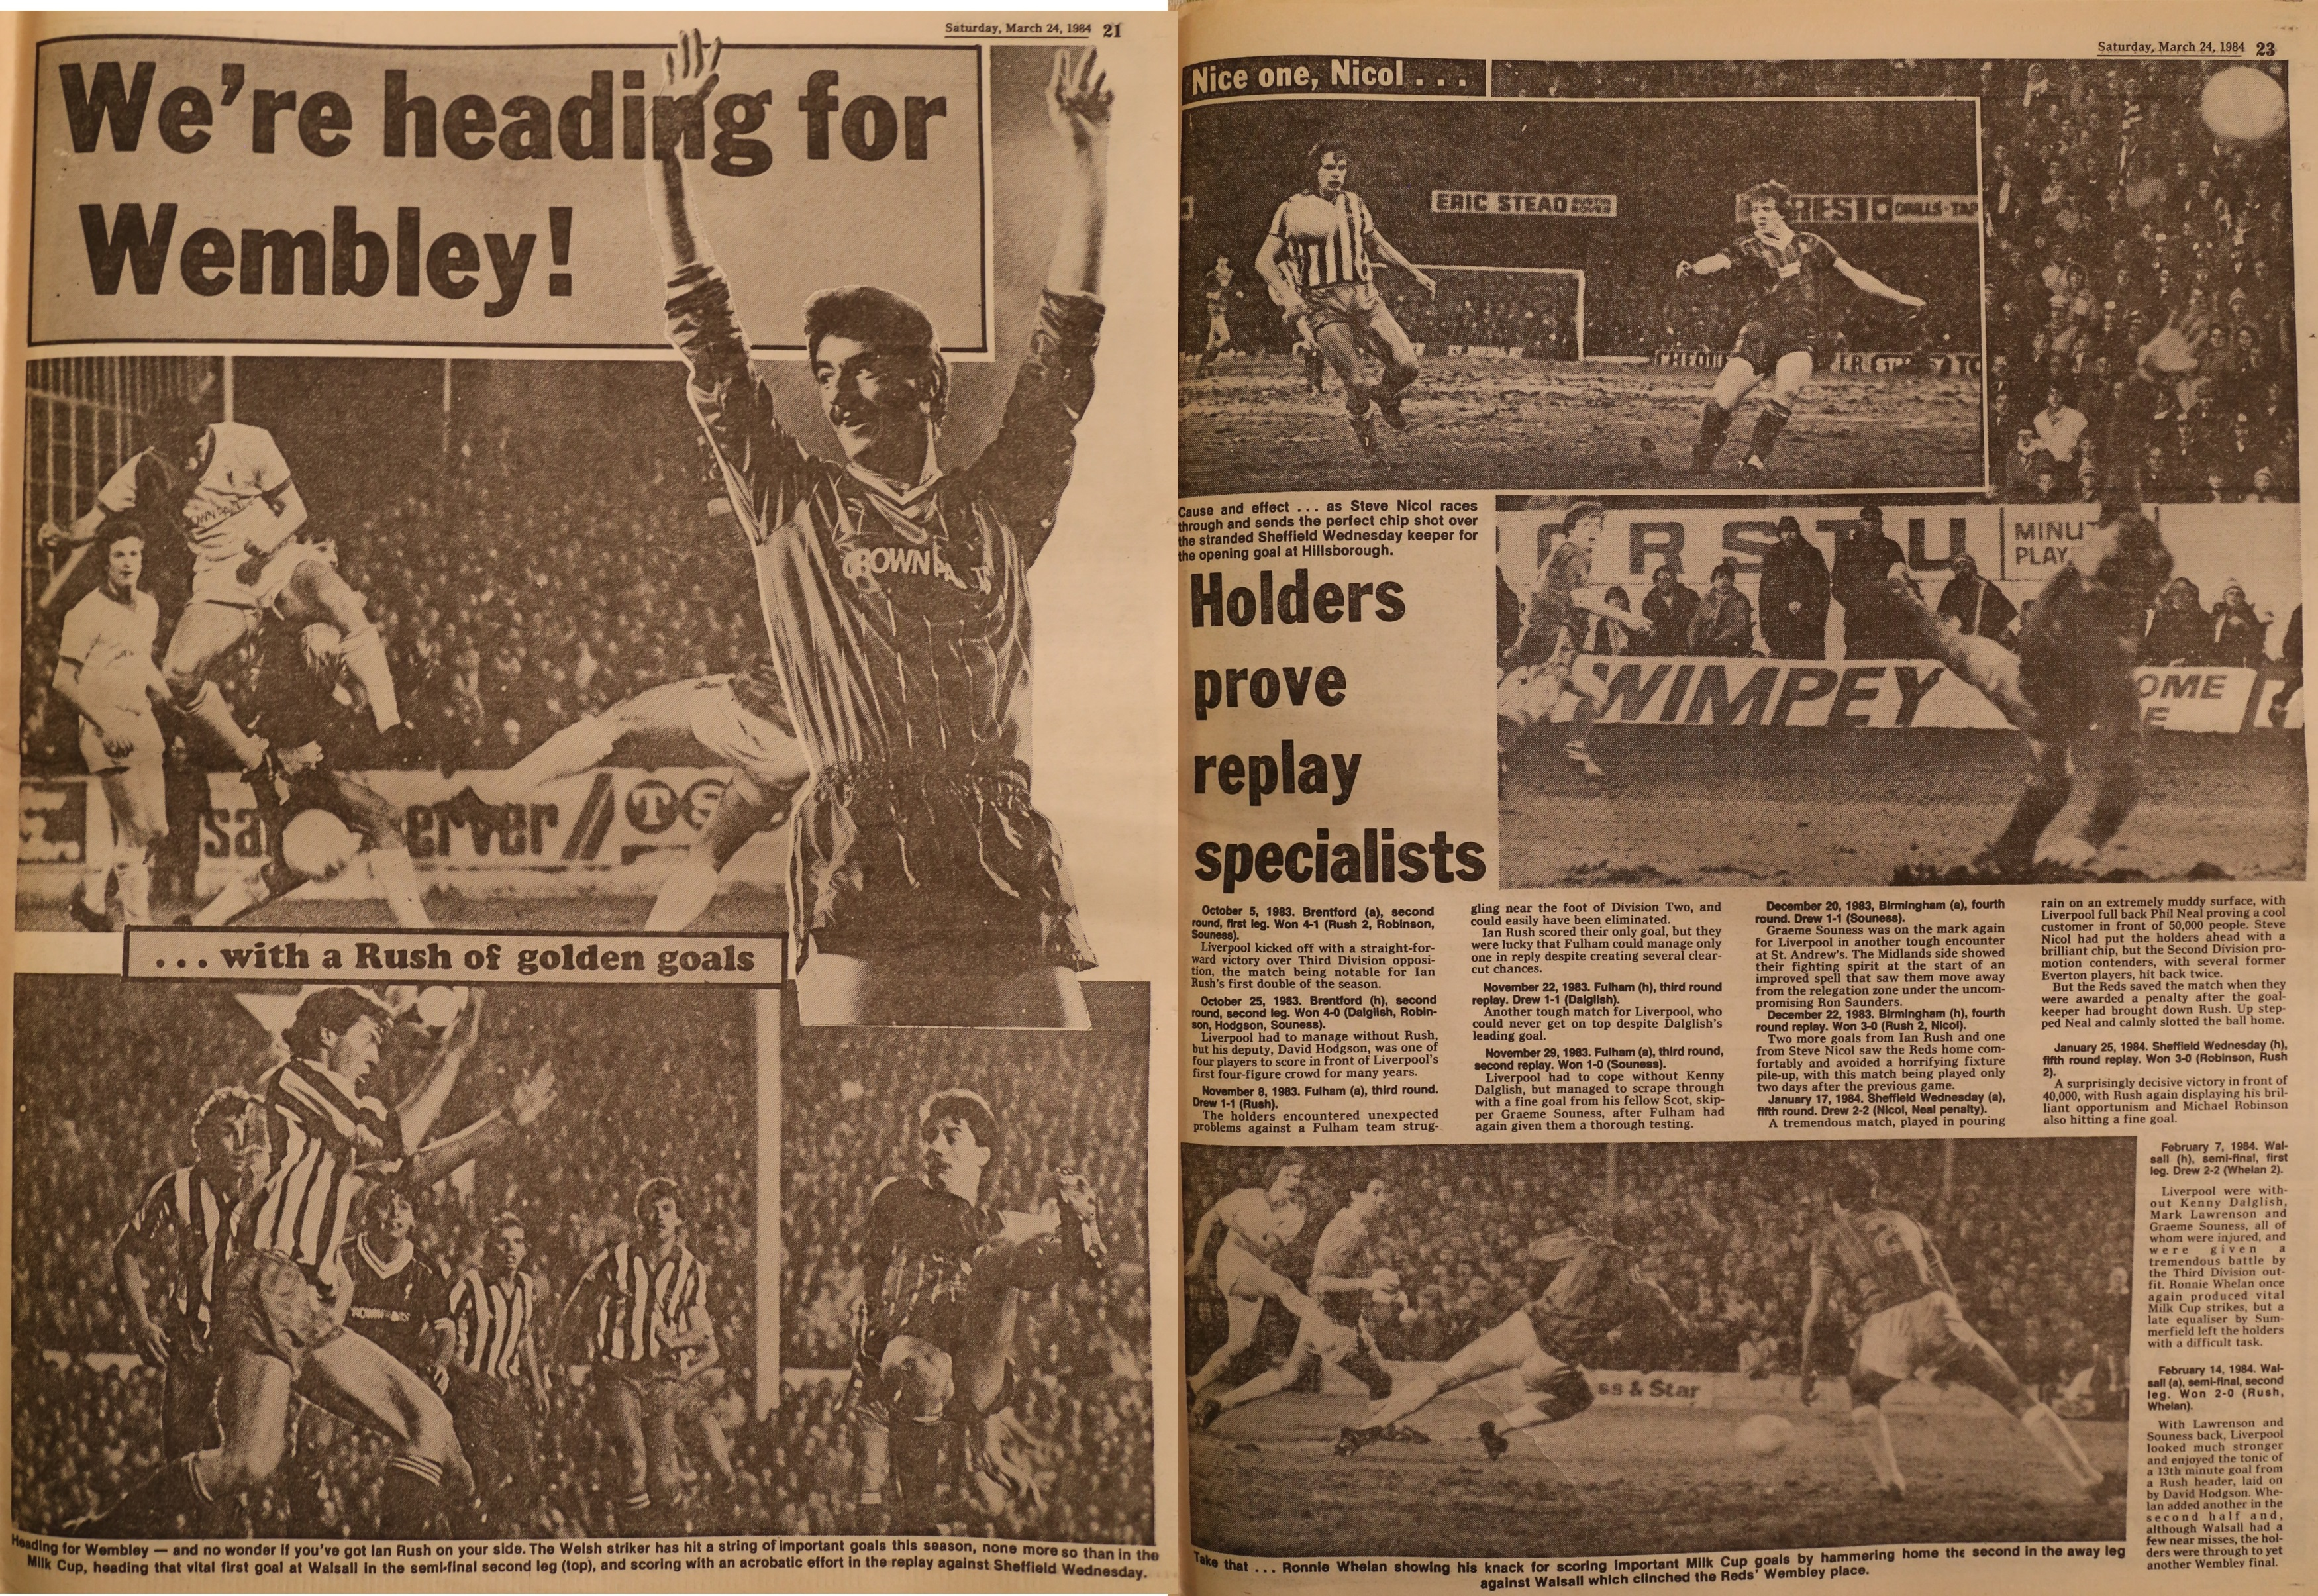 We're heading for Wembley - 25 March 1983